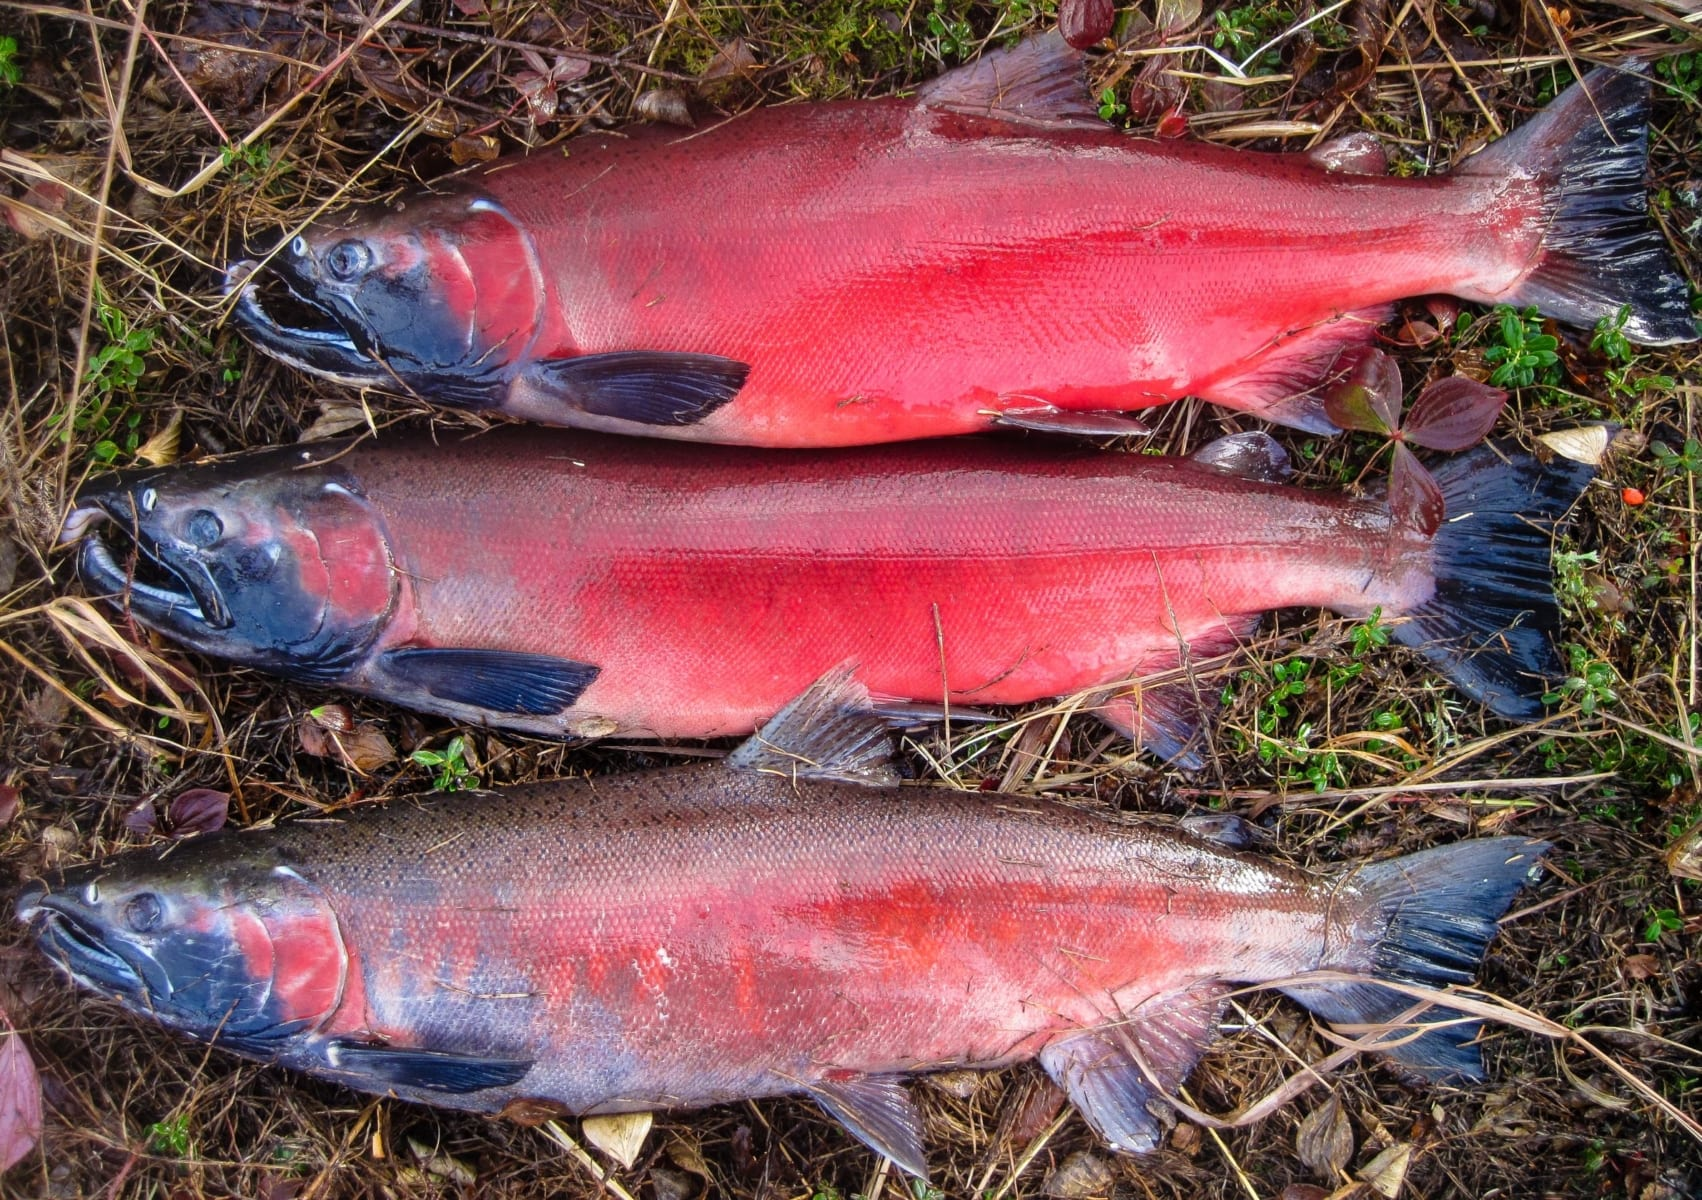 Three salmon rest upon the grassy knoll of the river bank.